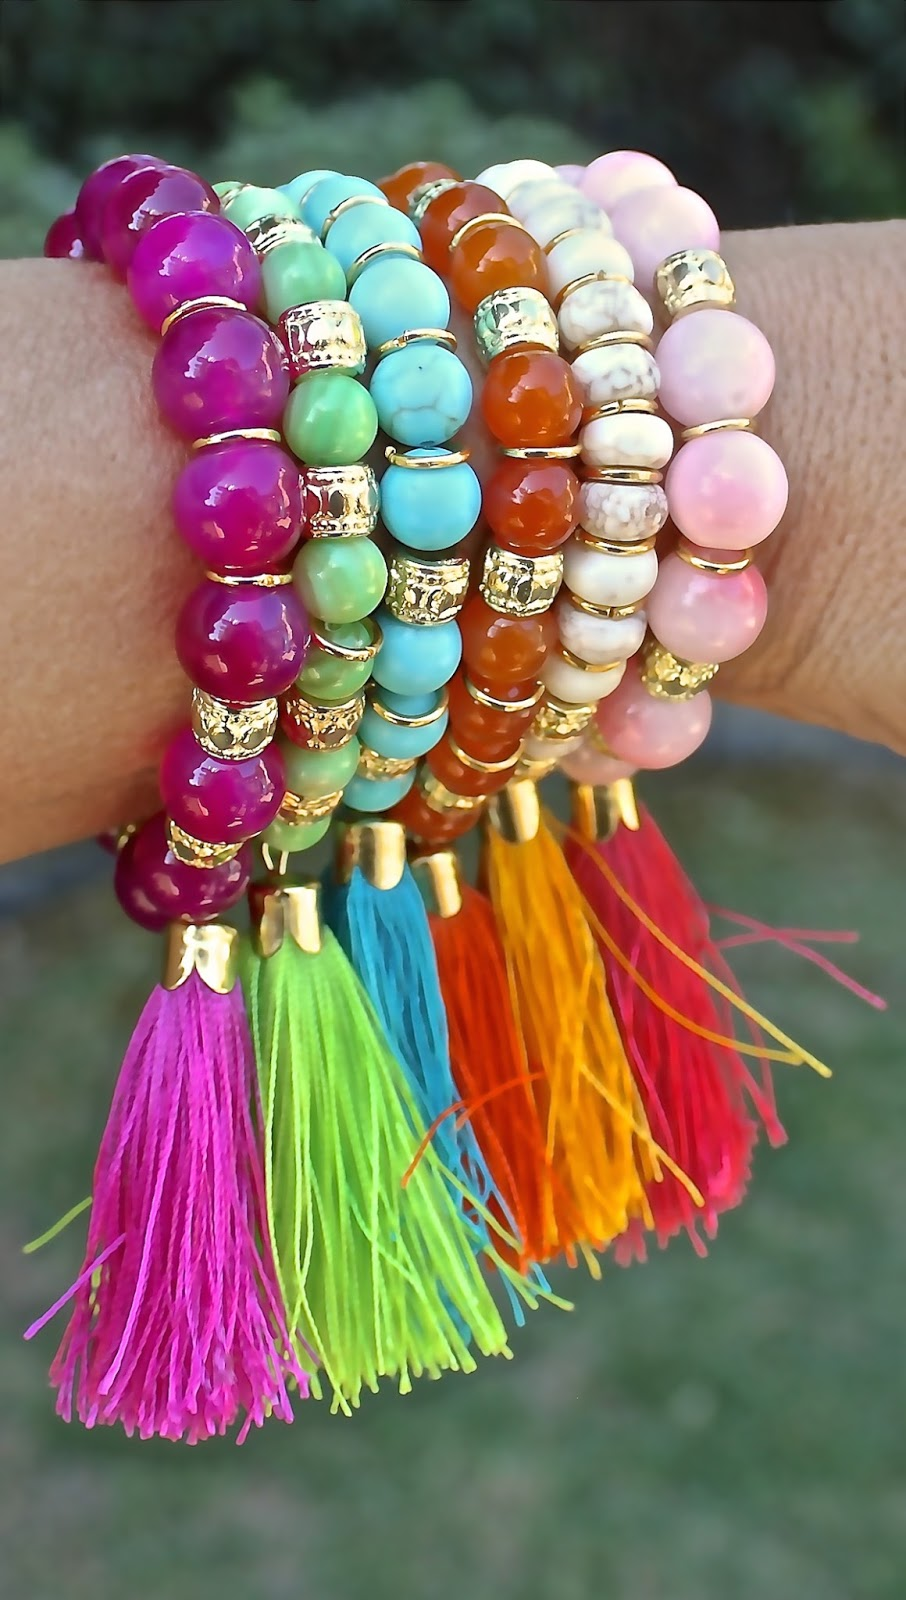 image nammu product pearl goddess bracelets collections a jewelry beach beachy is beaded bracelet heart freshwater